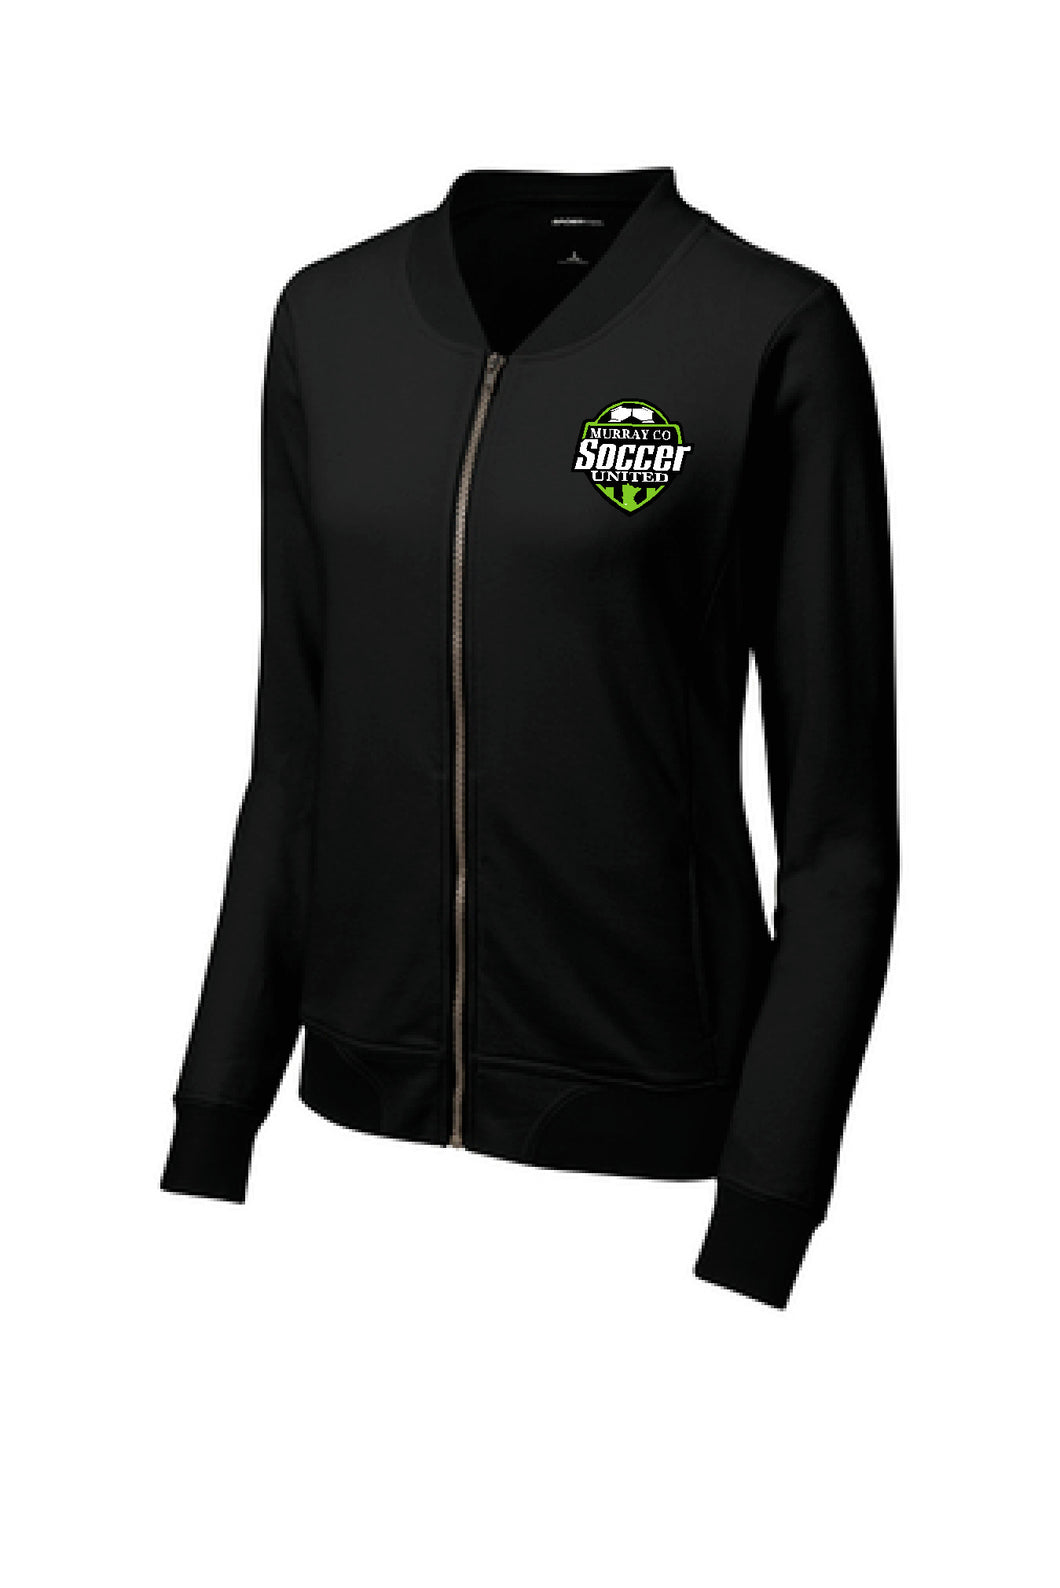 MURRAY COUNTY SOCCER UNITED FRENCH TERRY BOMBER FULL ZIP MENS OR LADIES  JACKET